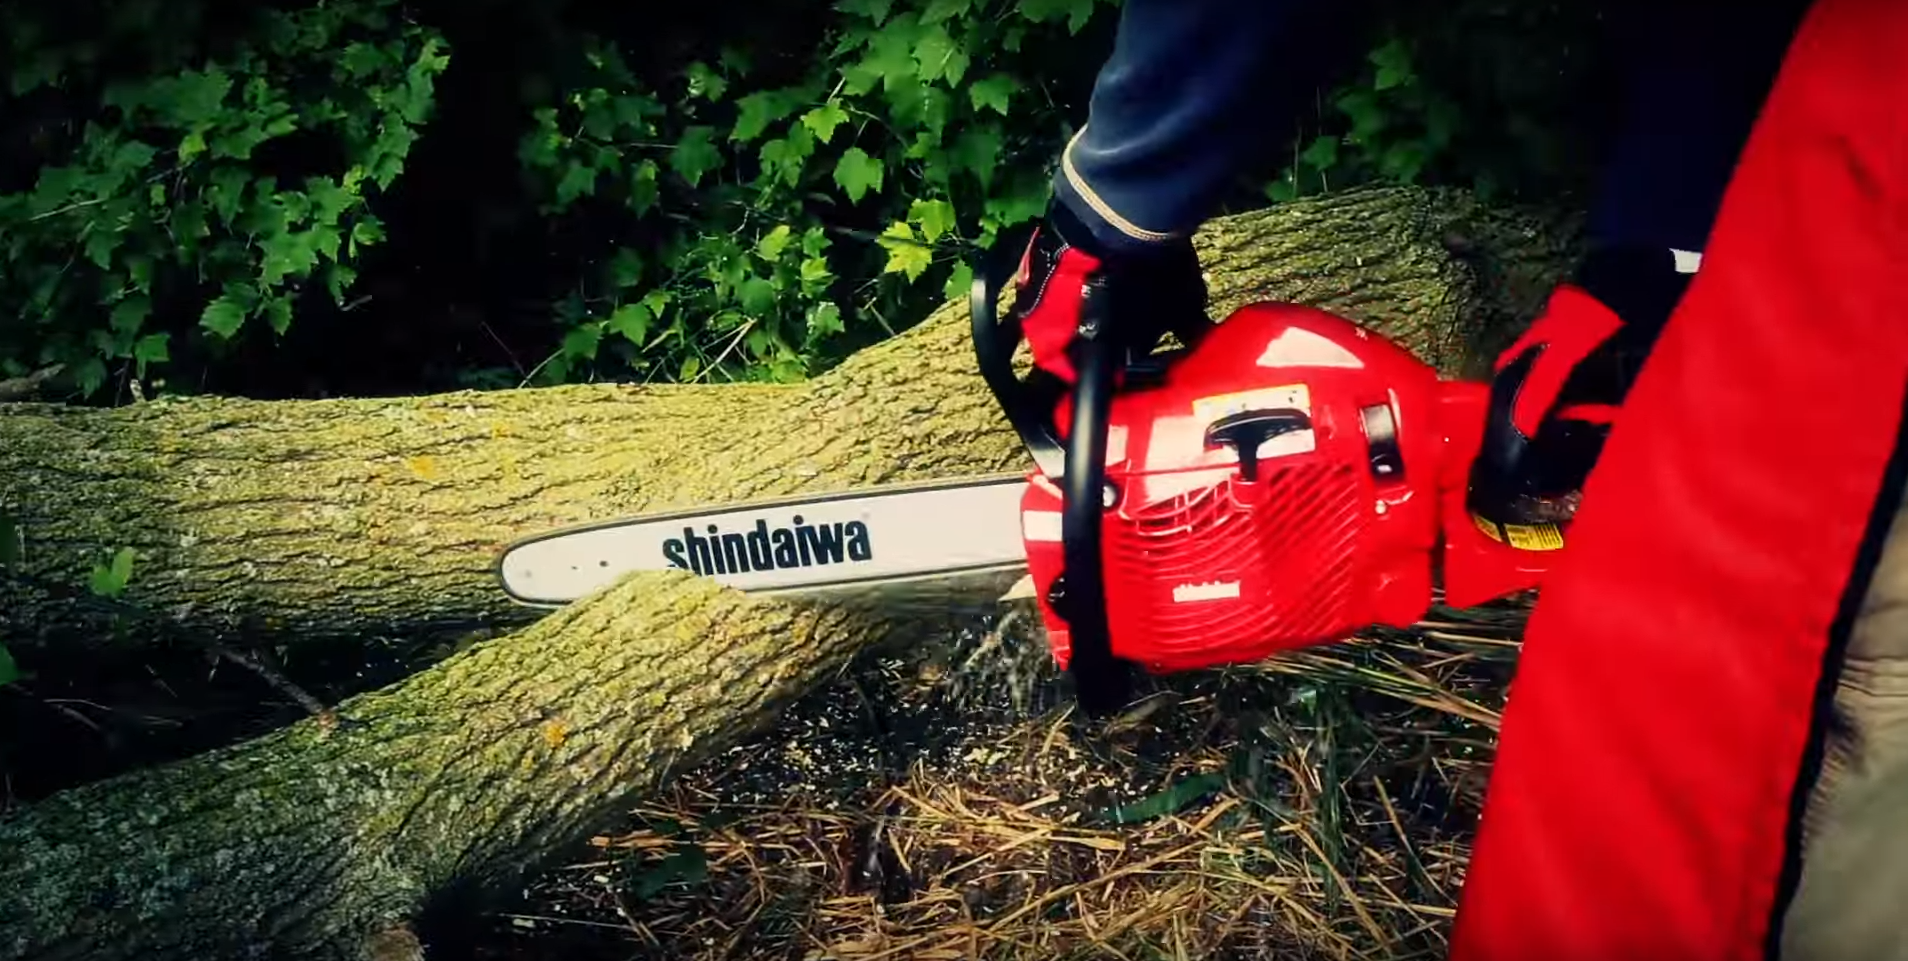 Shindaiwa Chainsaw in San Antonio Texas